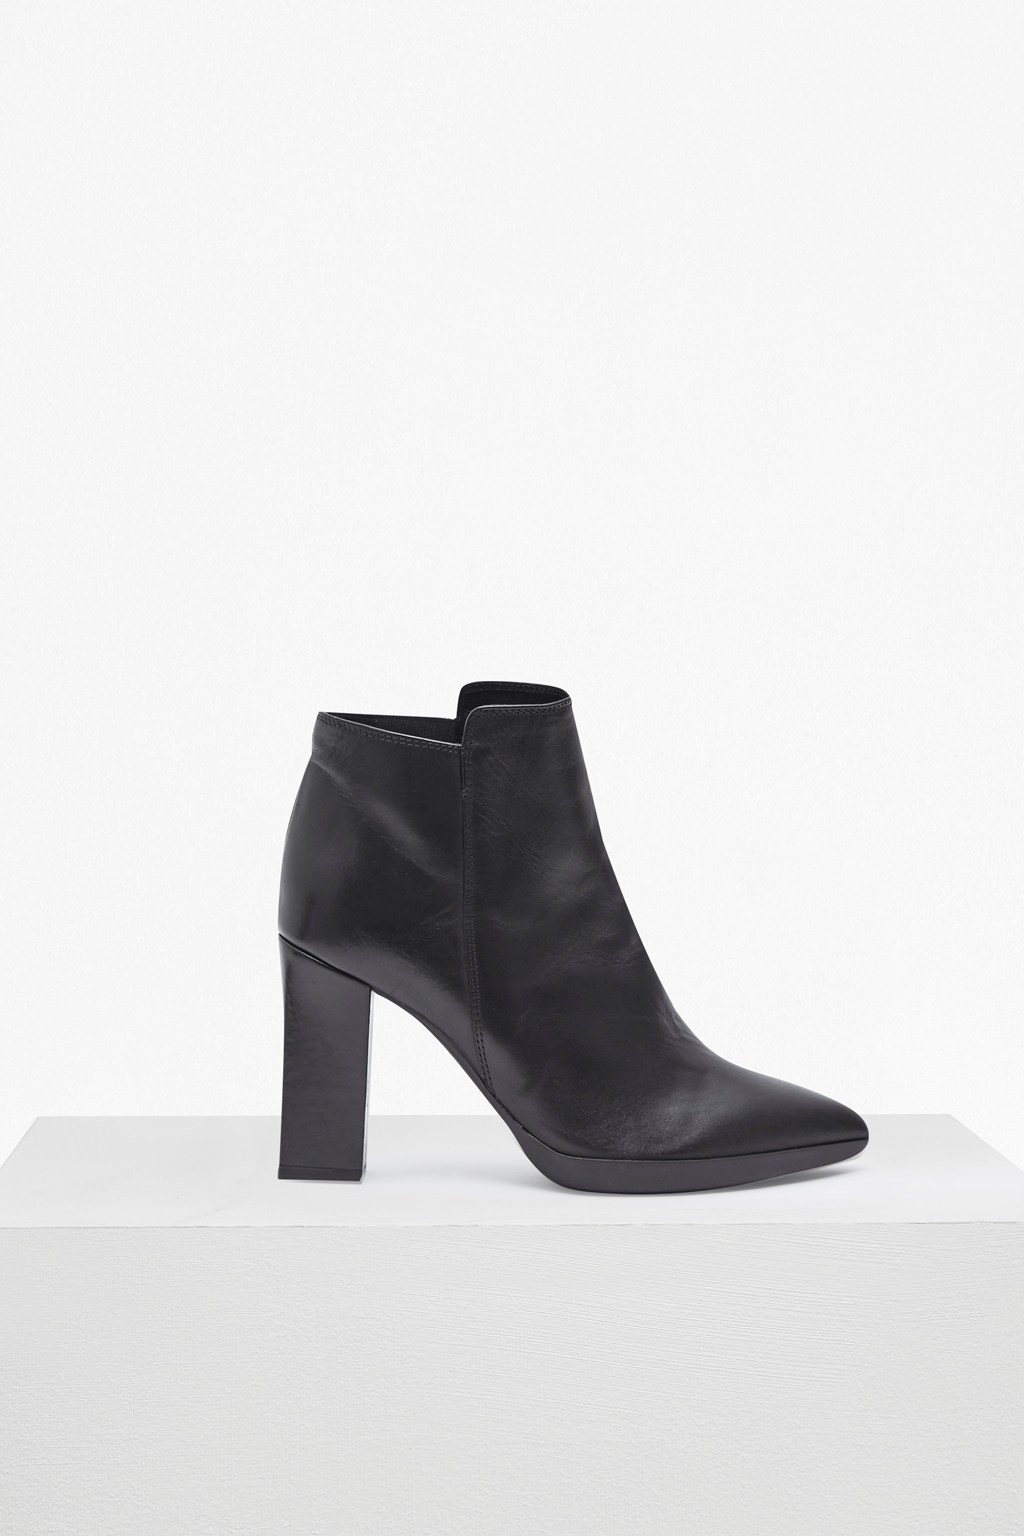 Reina High Heel Ankle Boots. loading images. 2d769040c